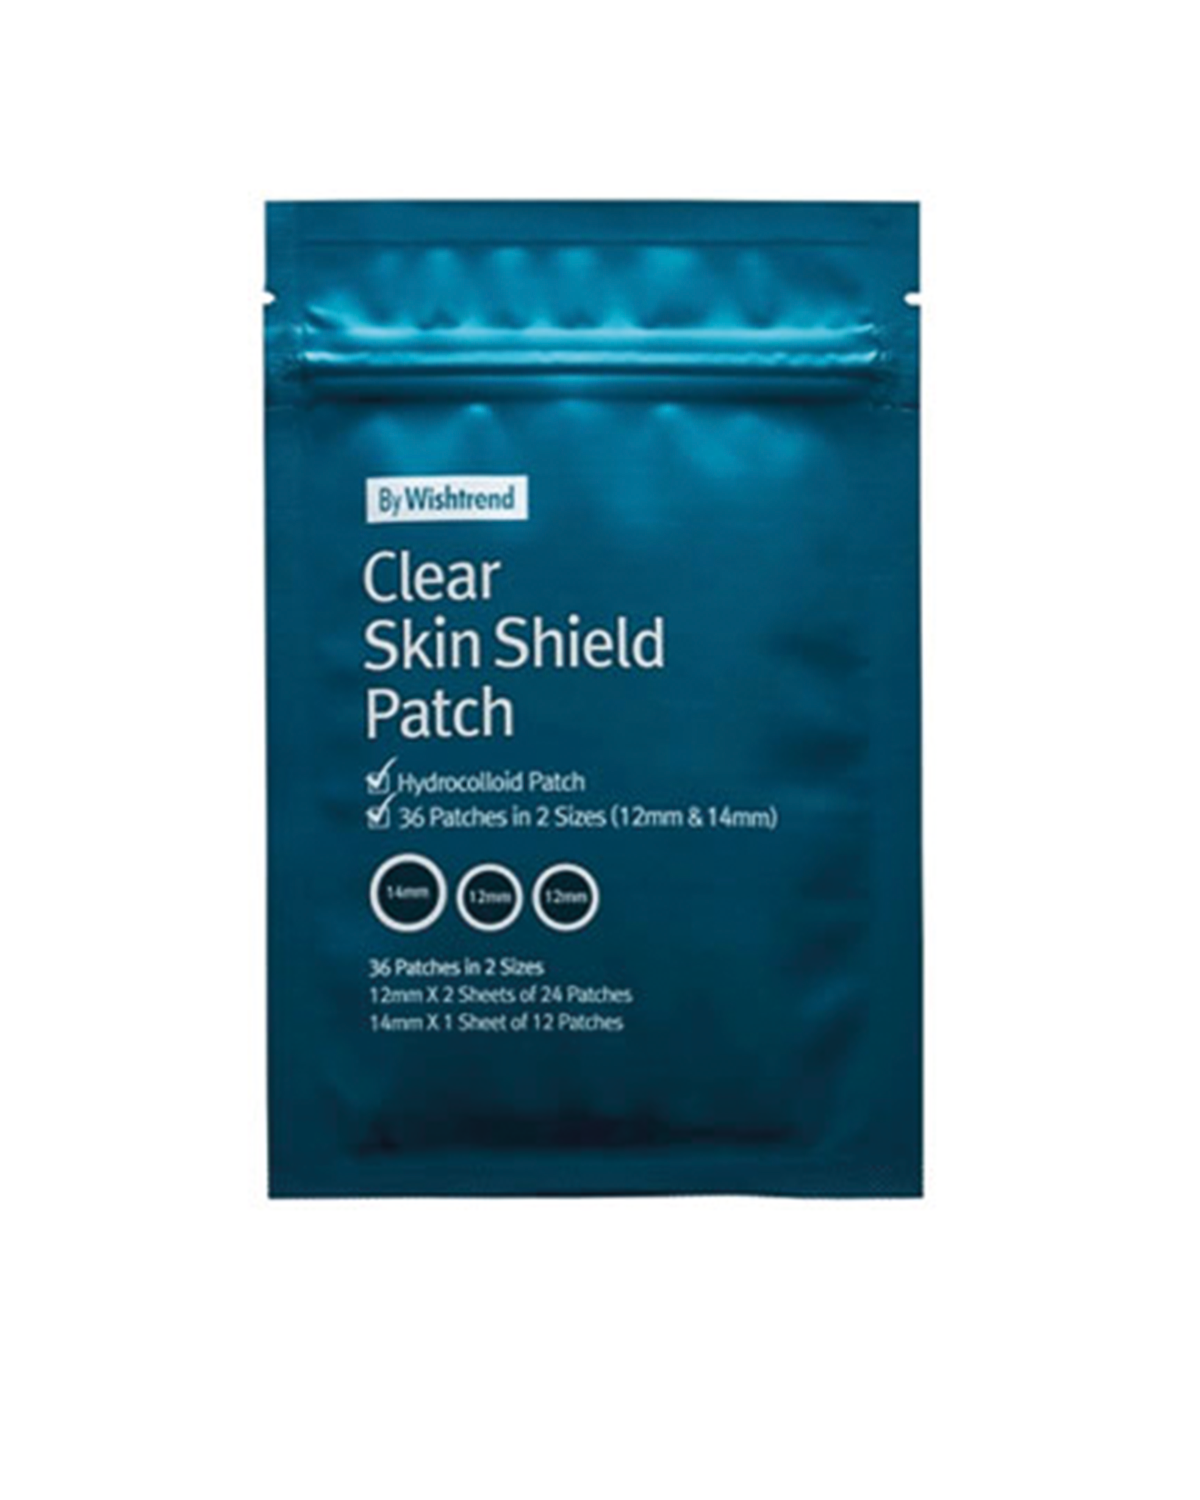 BY WISHTREND Clear Skin Shield Patch 36 ea